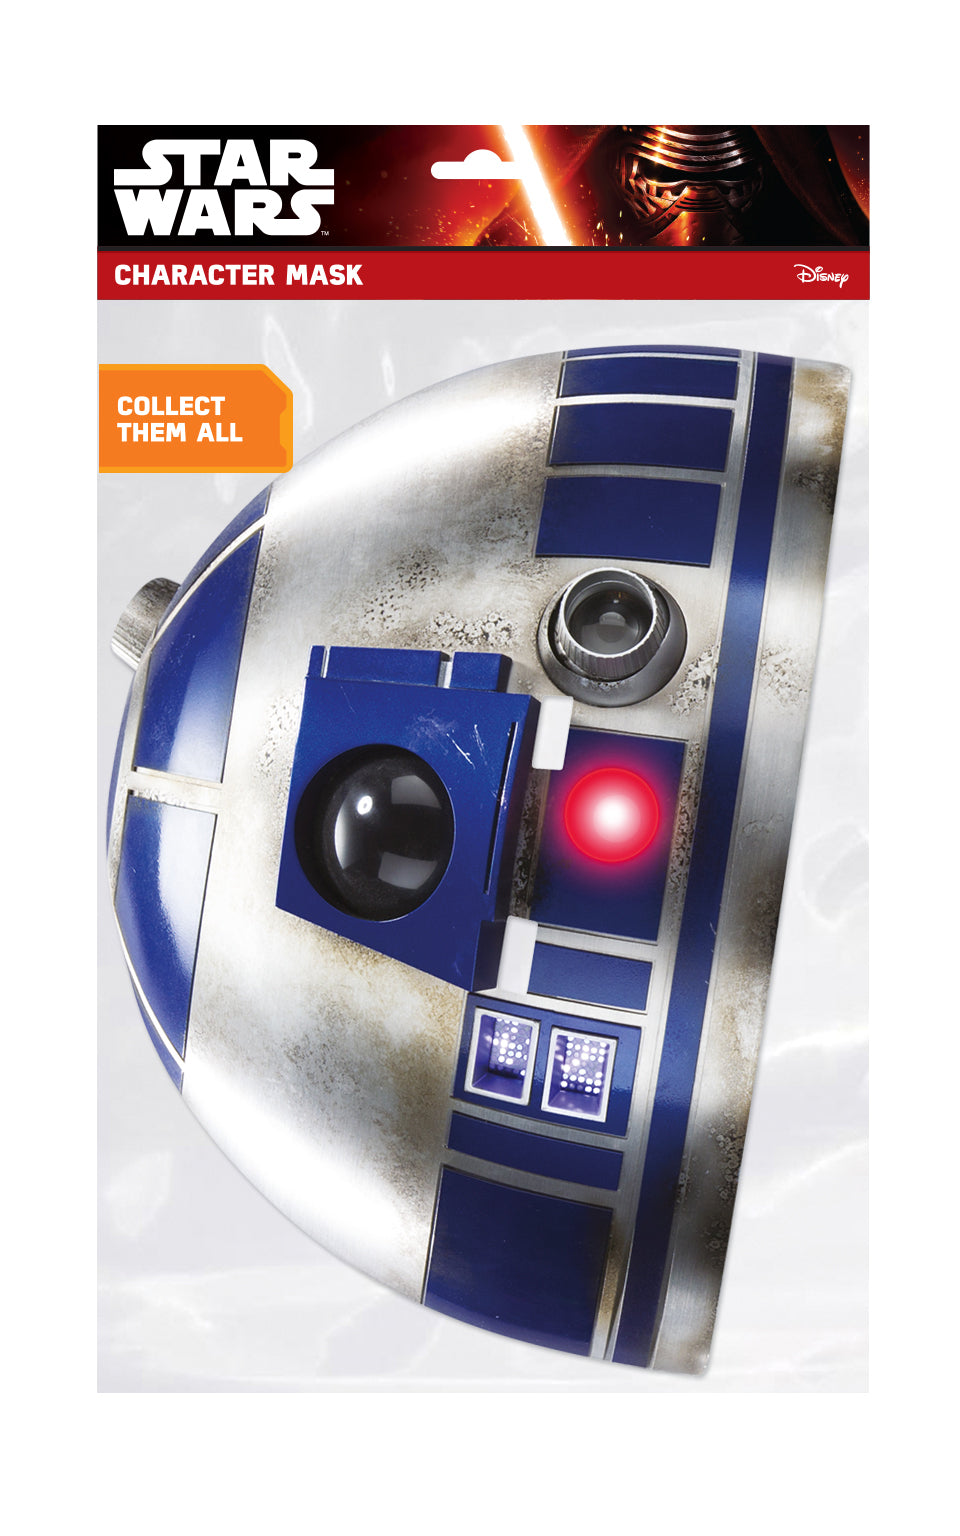 Star Wars Rogue One Last Jedi Face Mask - R2-D2 - NOVELTY GIFT